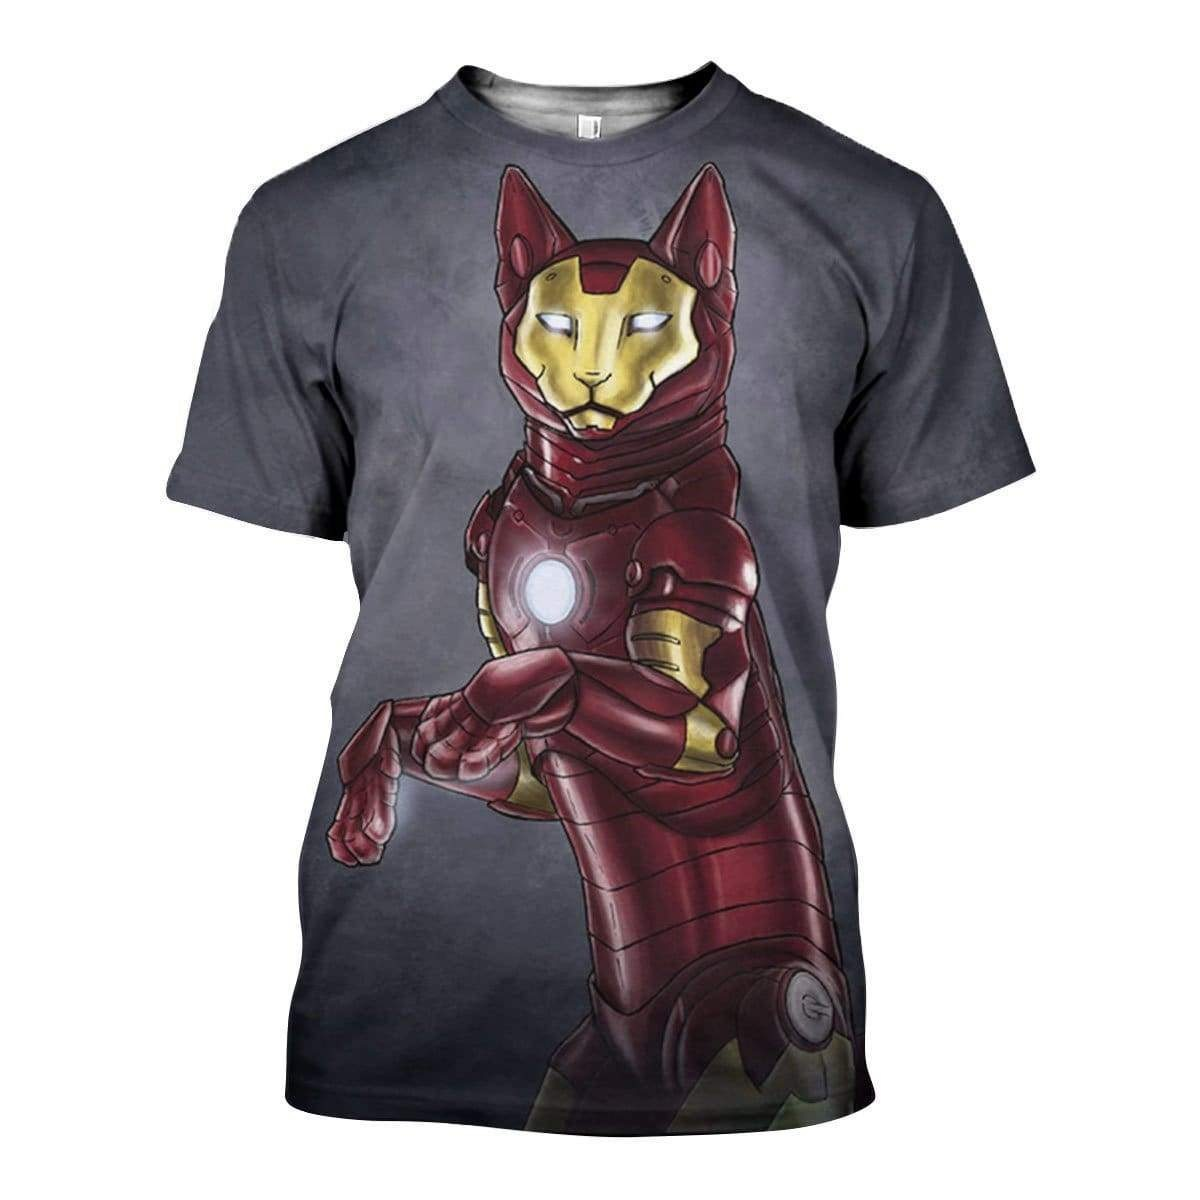 Avengers iron man iron cat all over print tshirt